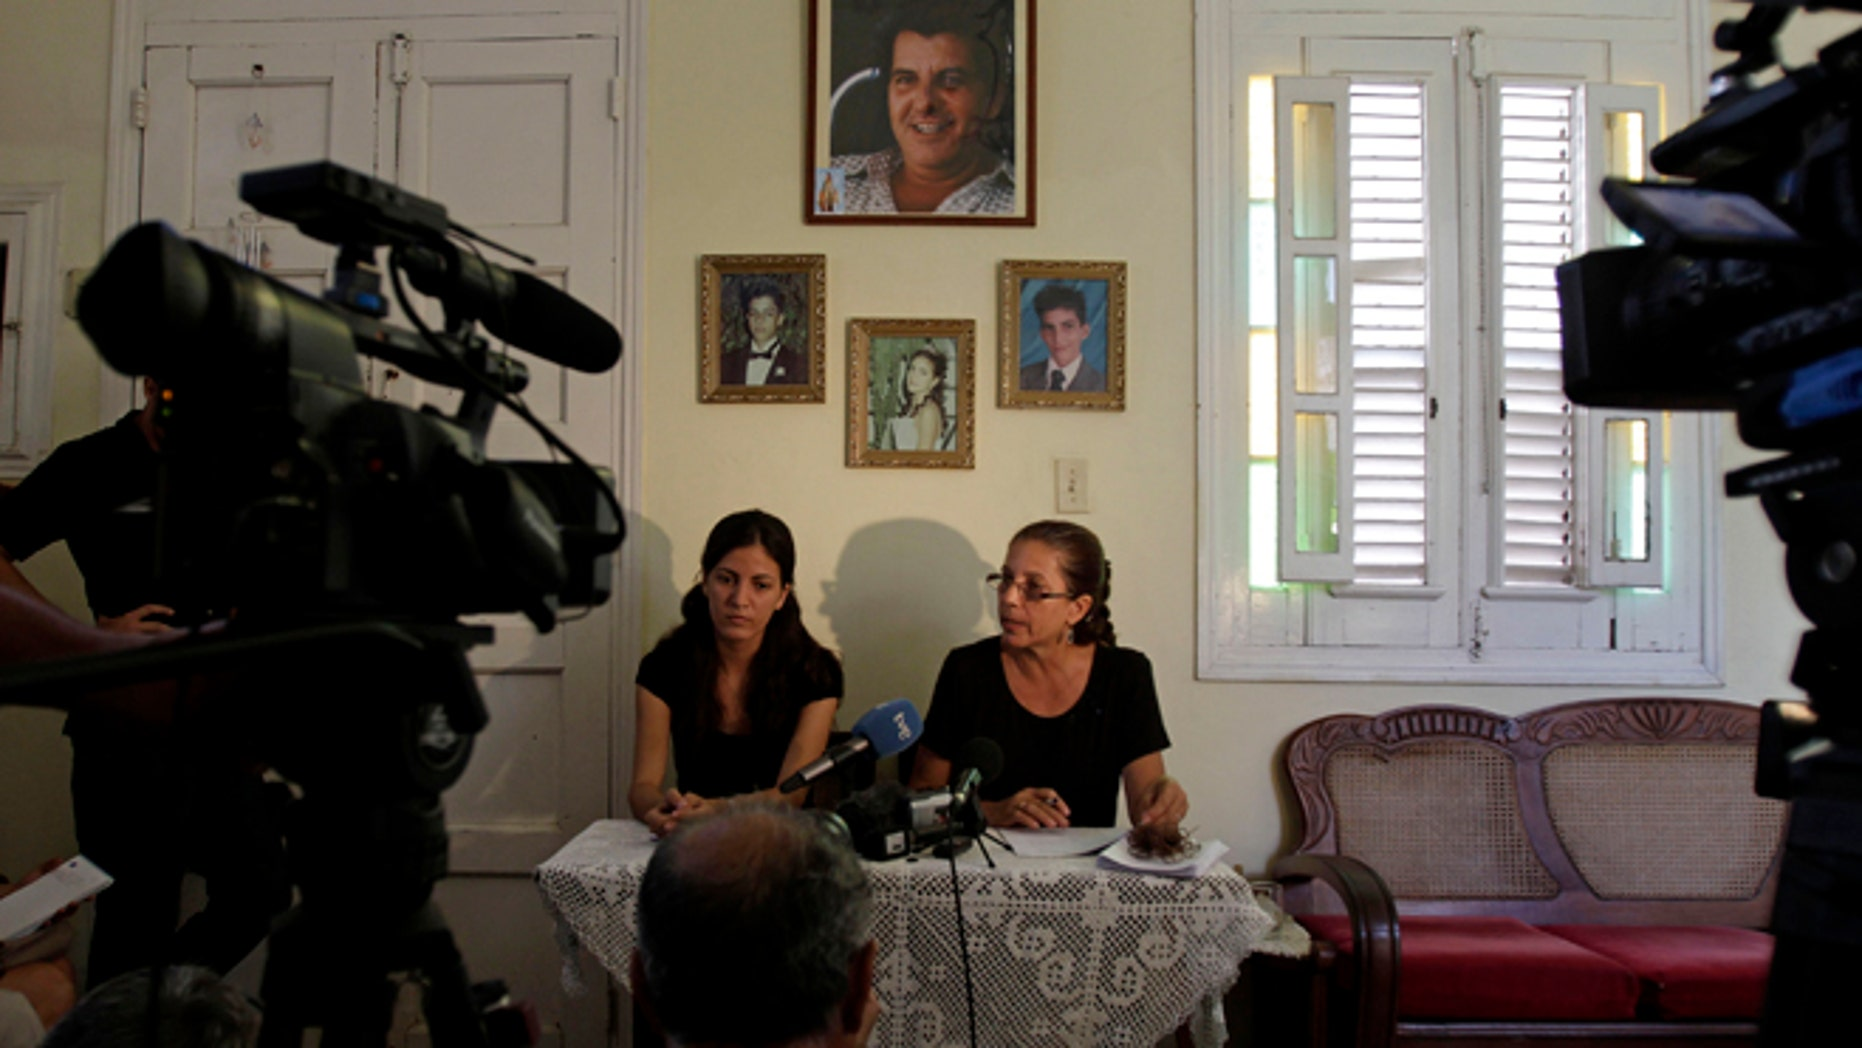 Ofelia Acevedo, right, widow of the late Cuban activist Oswaldo Paya and her daugther Rosa Maria Paya hold a news conference, in Havana, Cuba, Wednesday, Aug 1, 2012. Cuba has charged a Spanish citizen with the equivalent of vehicular manslaughter in the July 22 car accident that killed Acevedo's husband, a prominent dissident and another government opponent. (AP Photo/Franklin Reyes)